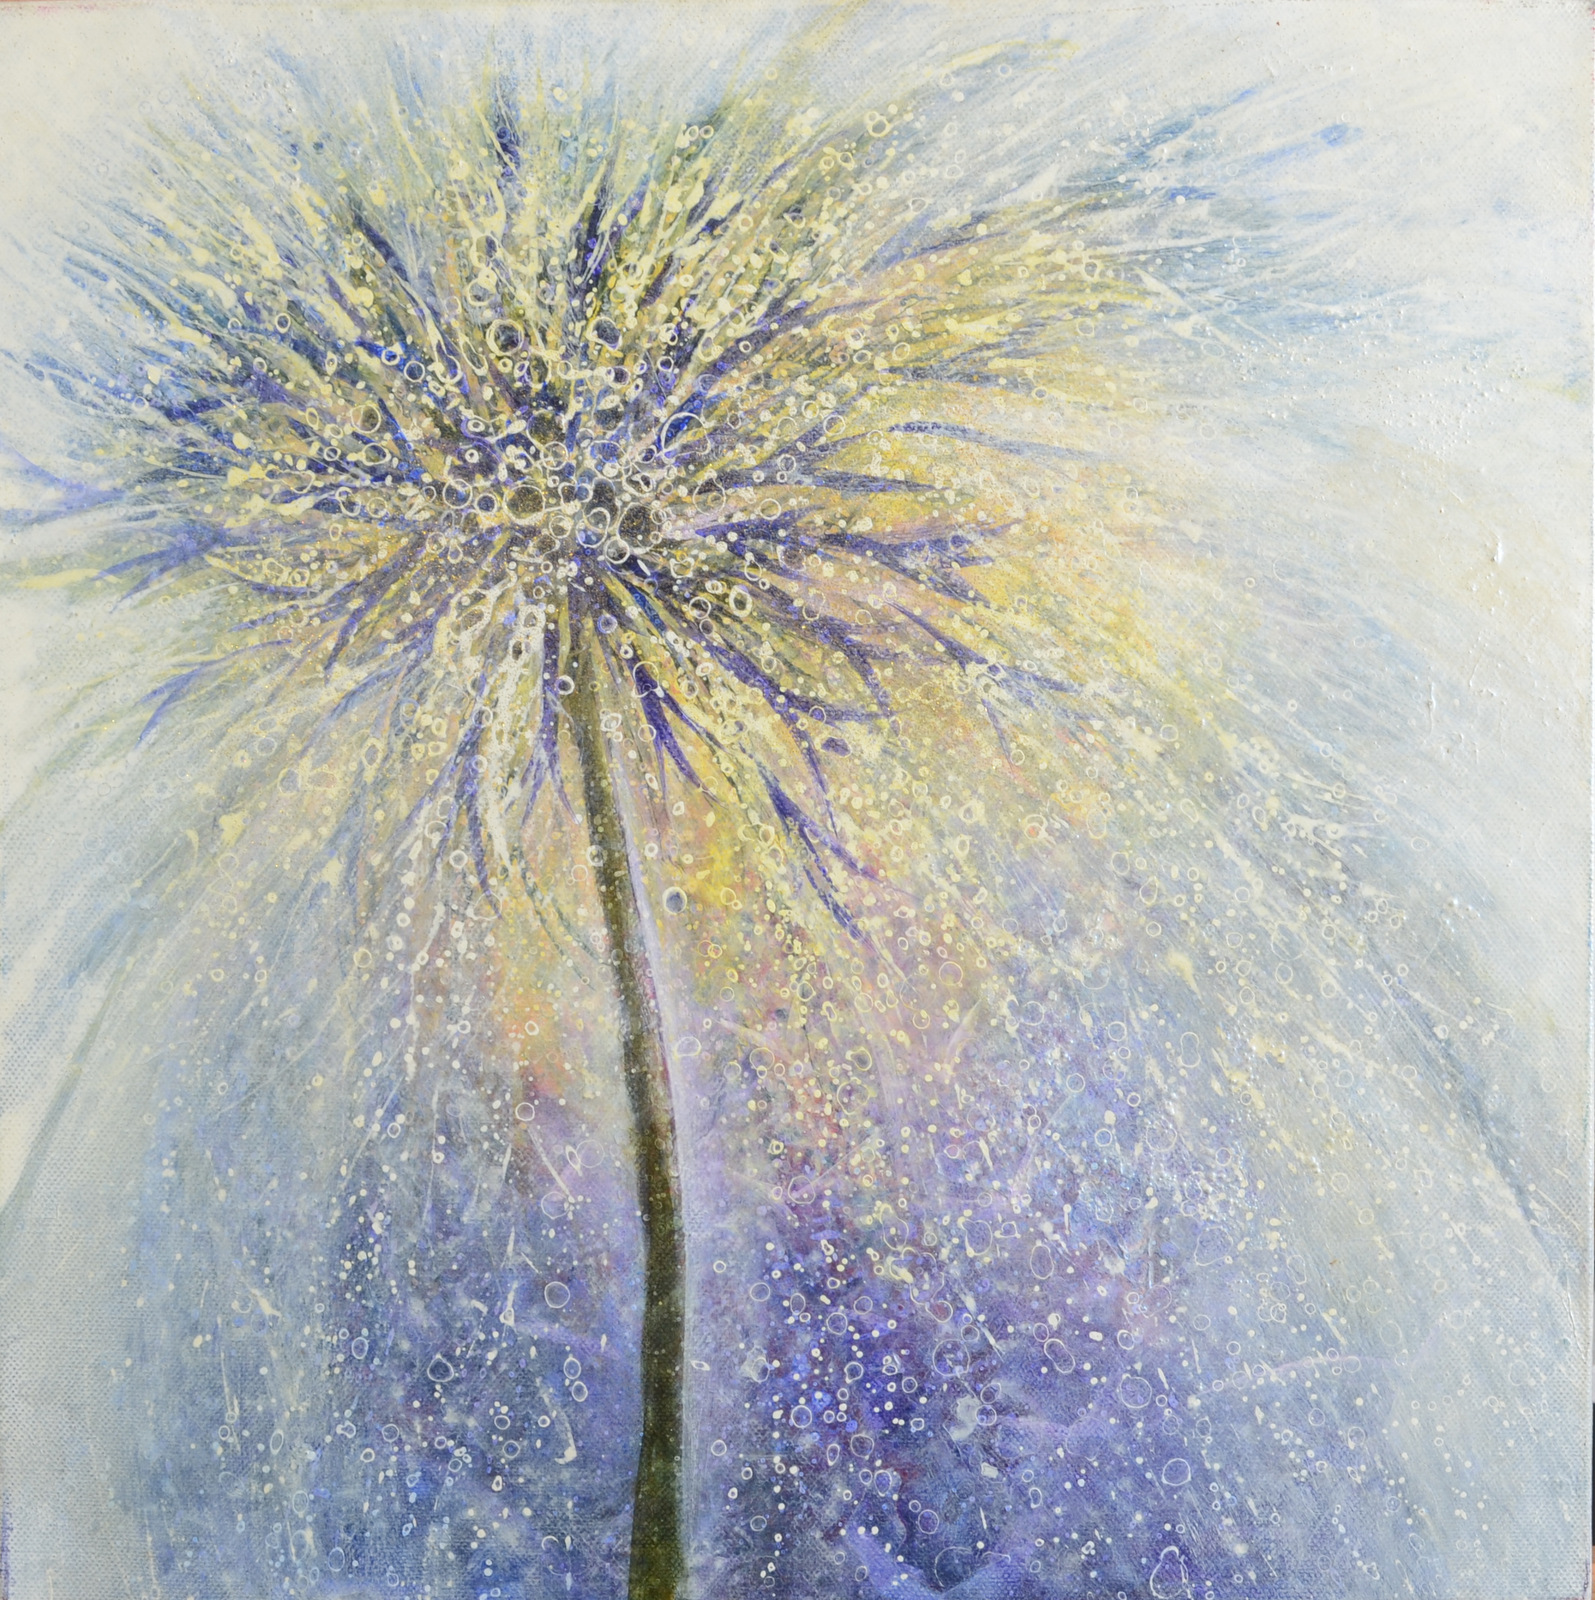 Lot 12 - IZUMI OMORI Beautiful Blossom Acrylic on canvas Artist mark and dated on the side 2008 41 x 41 cm